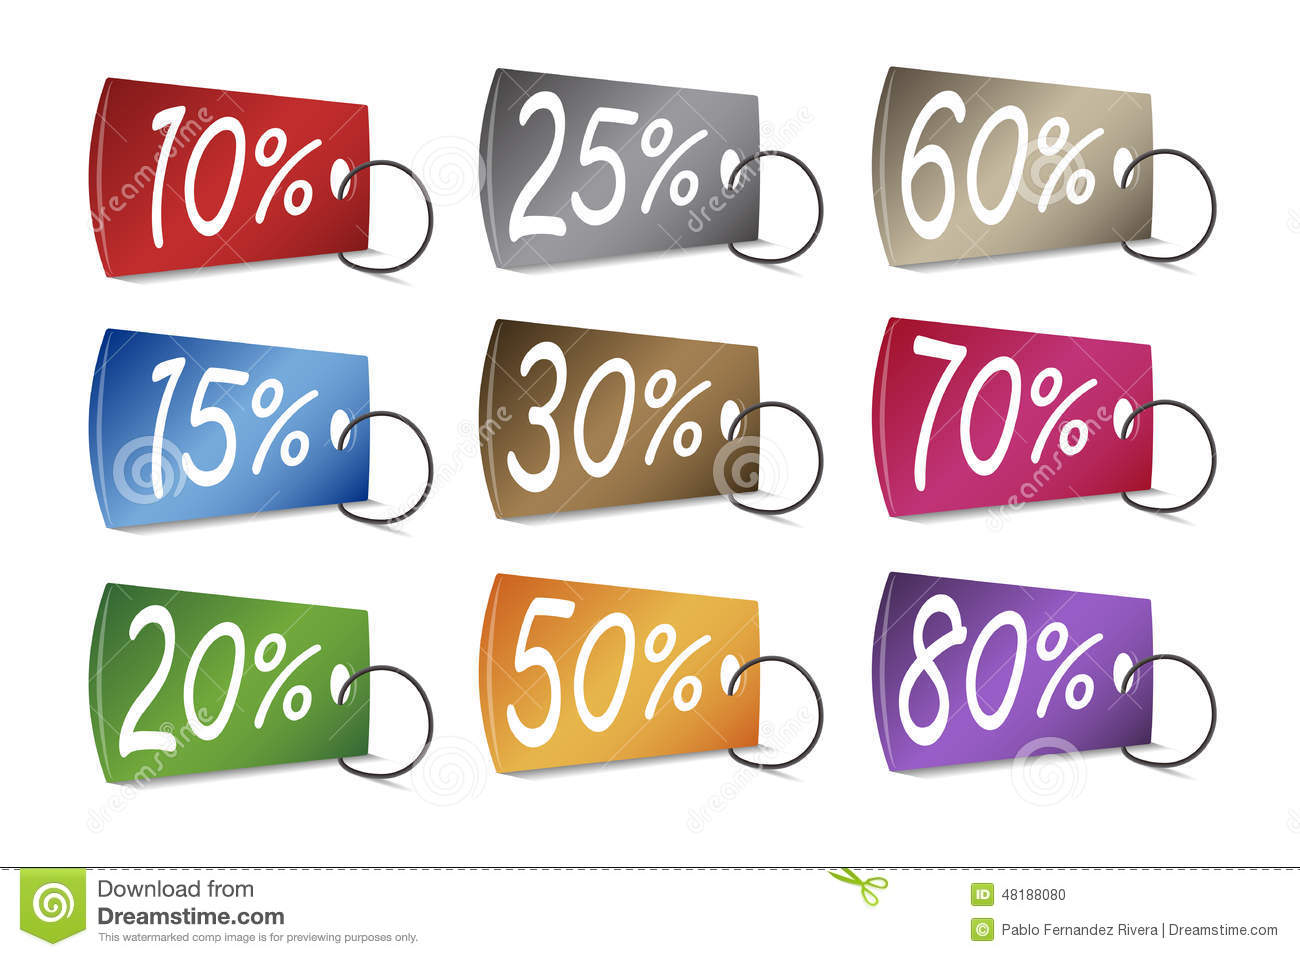 Https Www Dreamstime Com Stock Illustration Discounted Prices Tags Illustration Image48188080